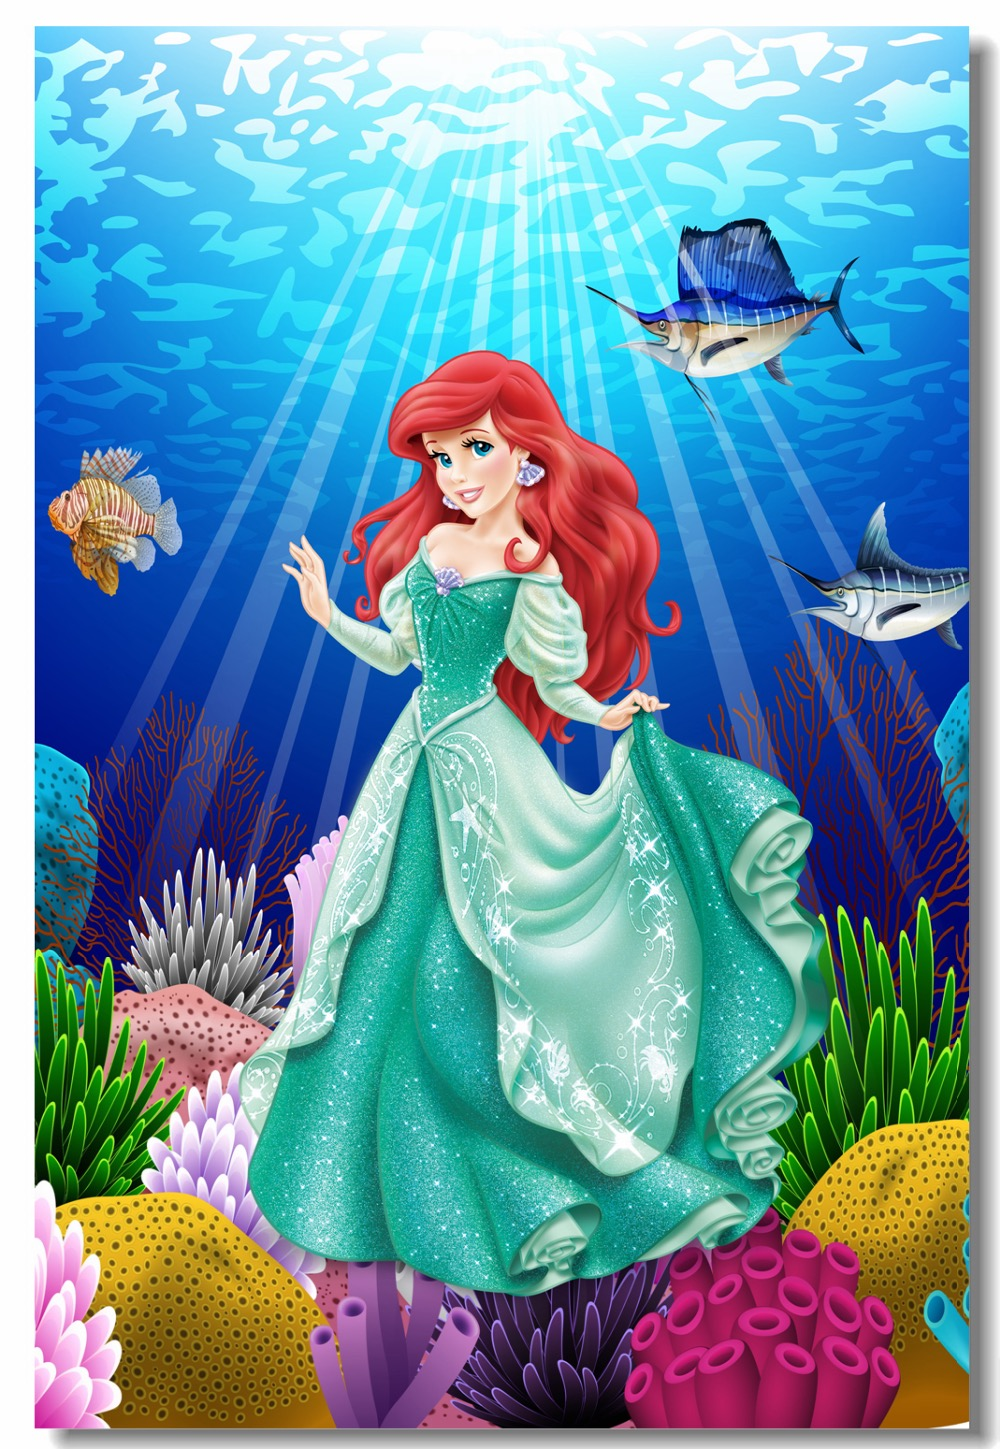 Personalized Customized Princess Ariel Name Banner Wall Poster with Frame Set